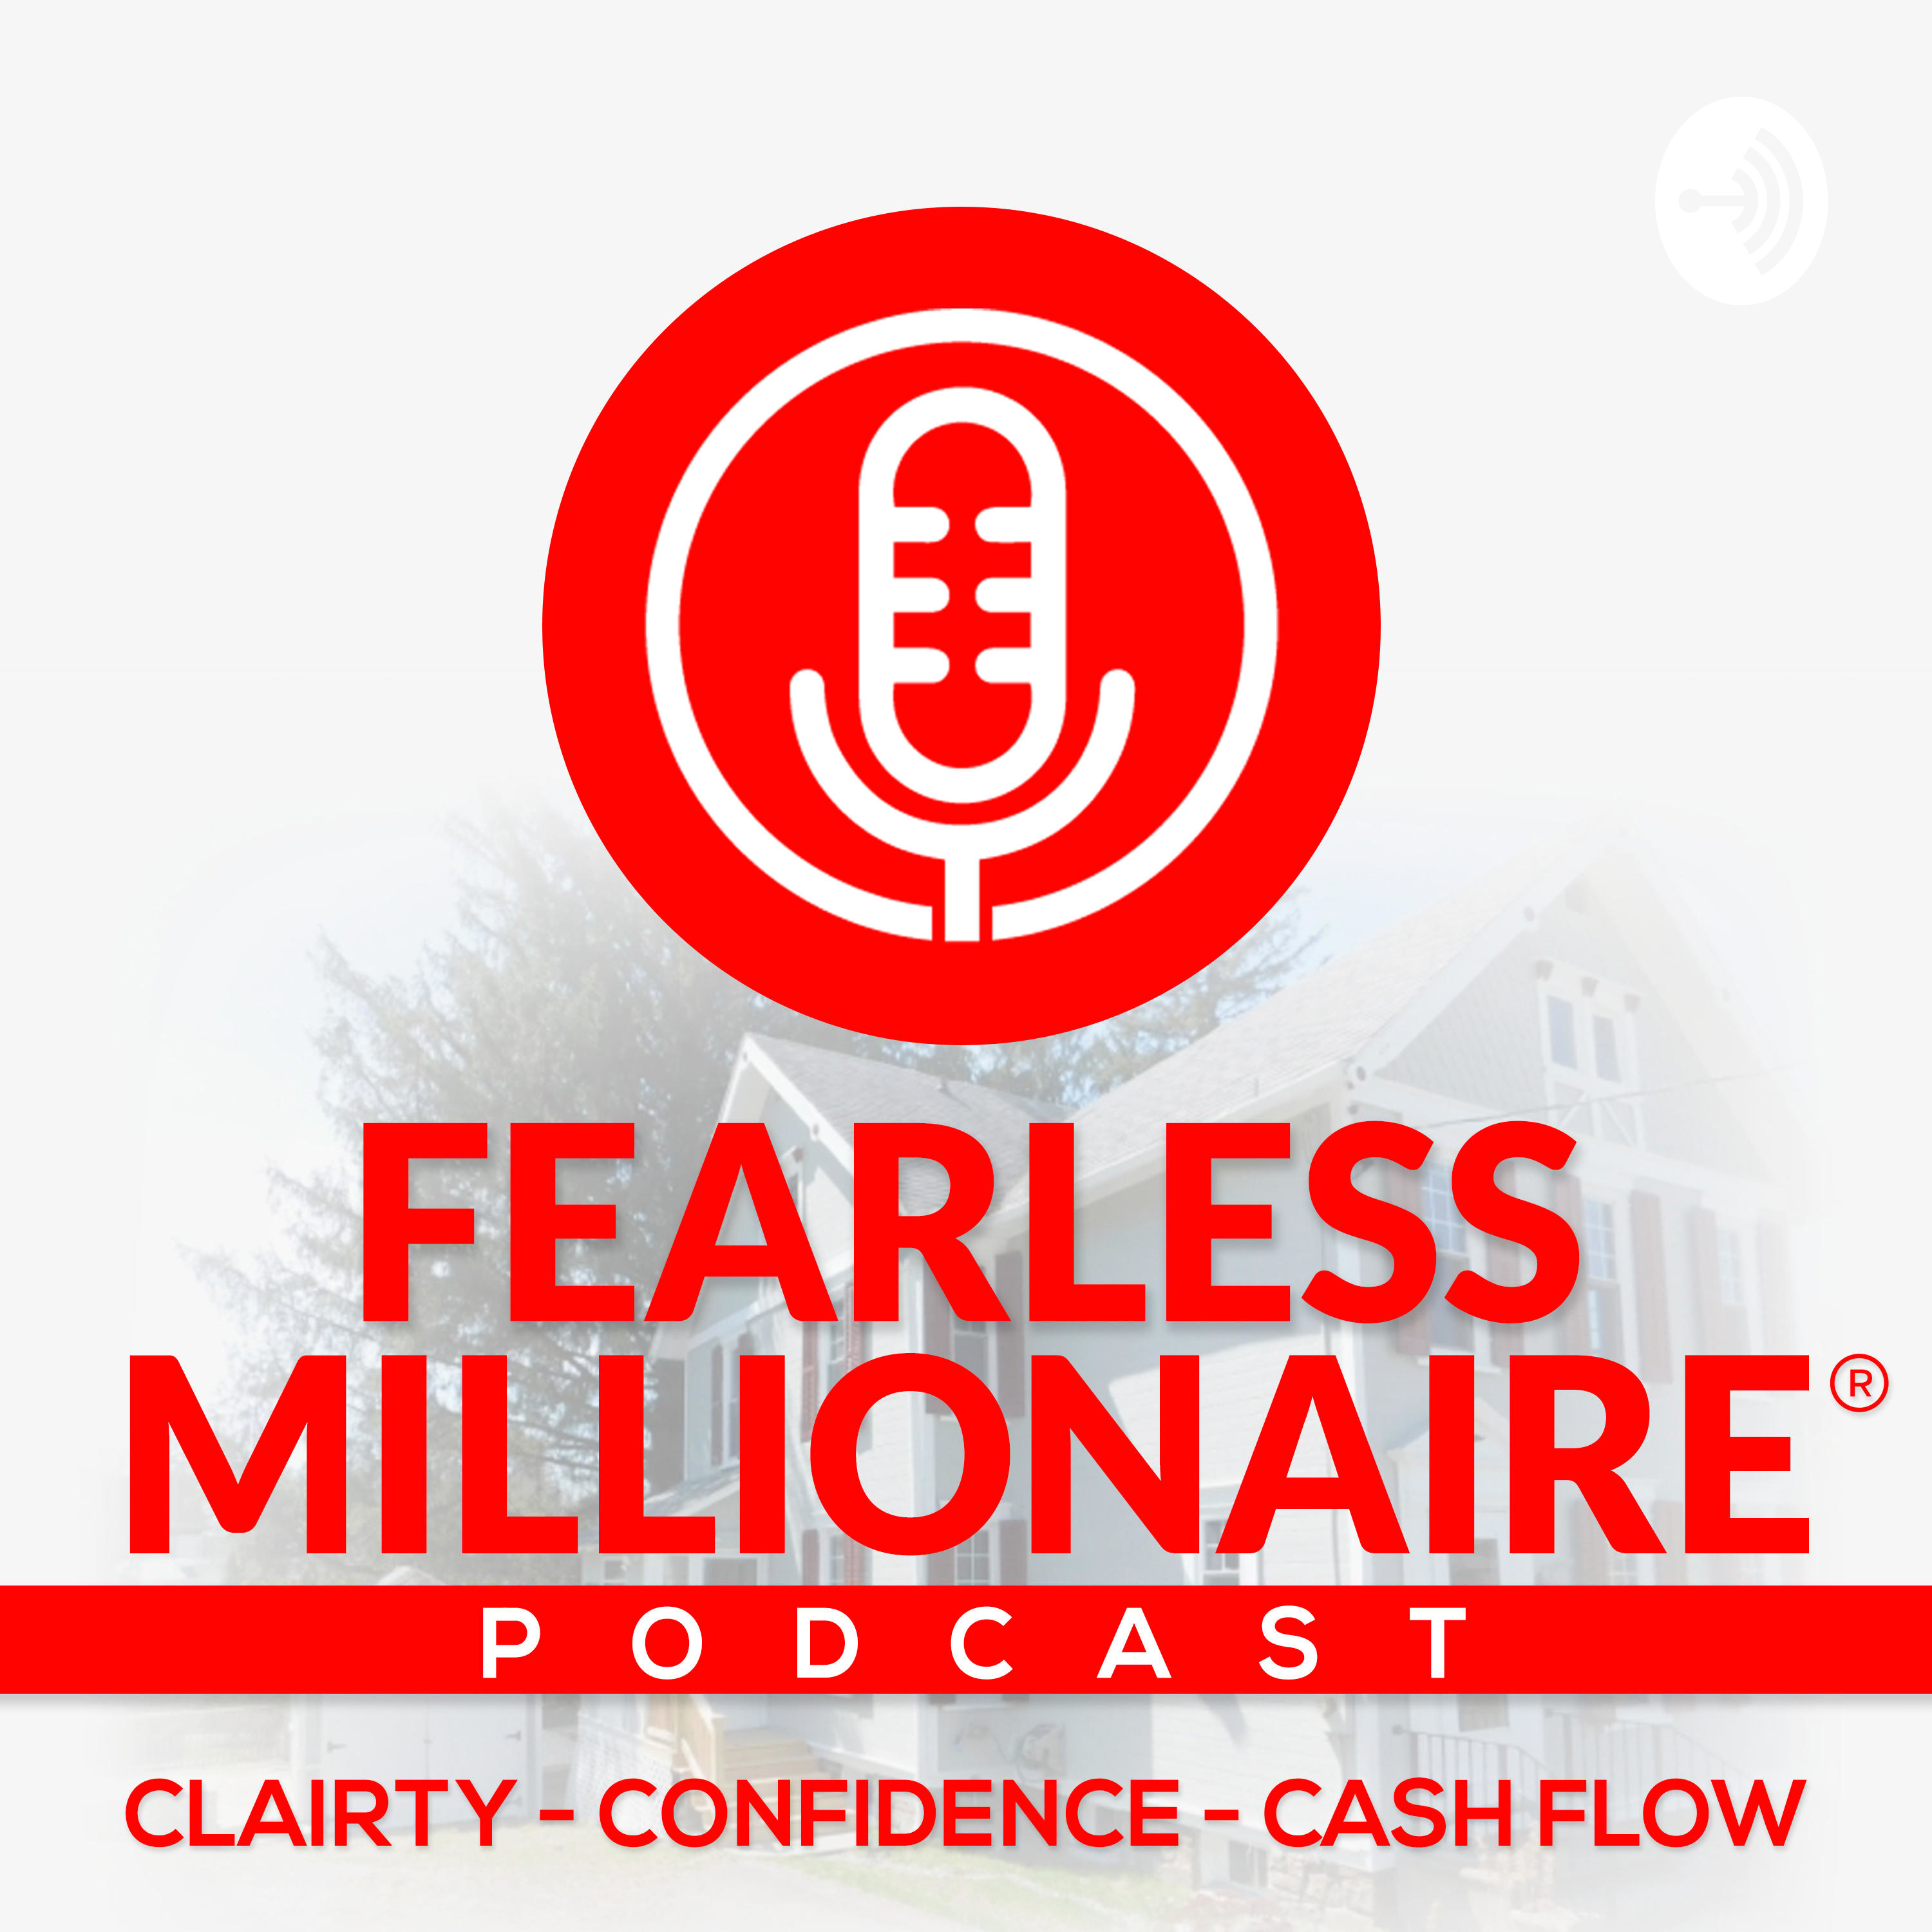 Fearless Millionaire Podcast